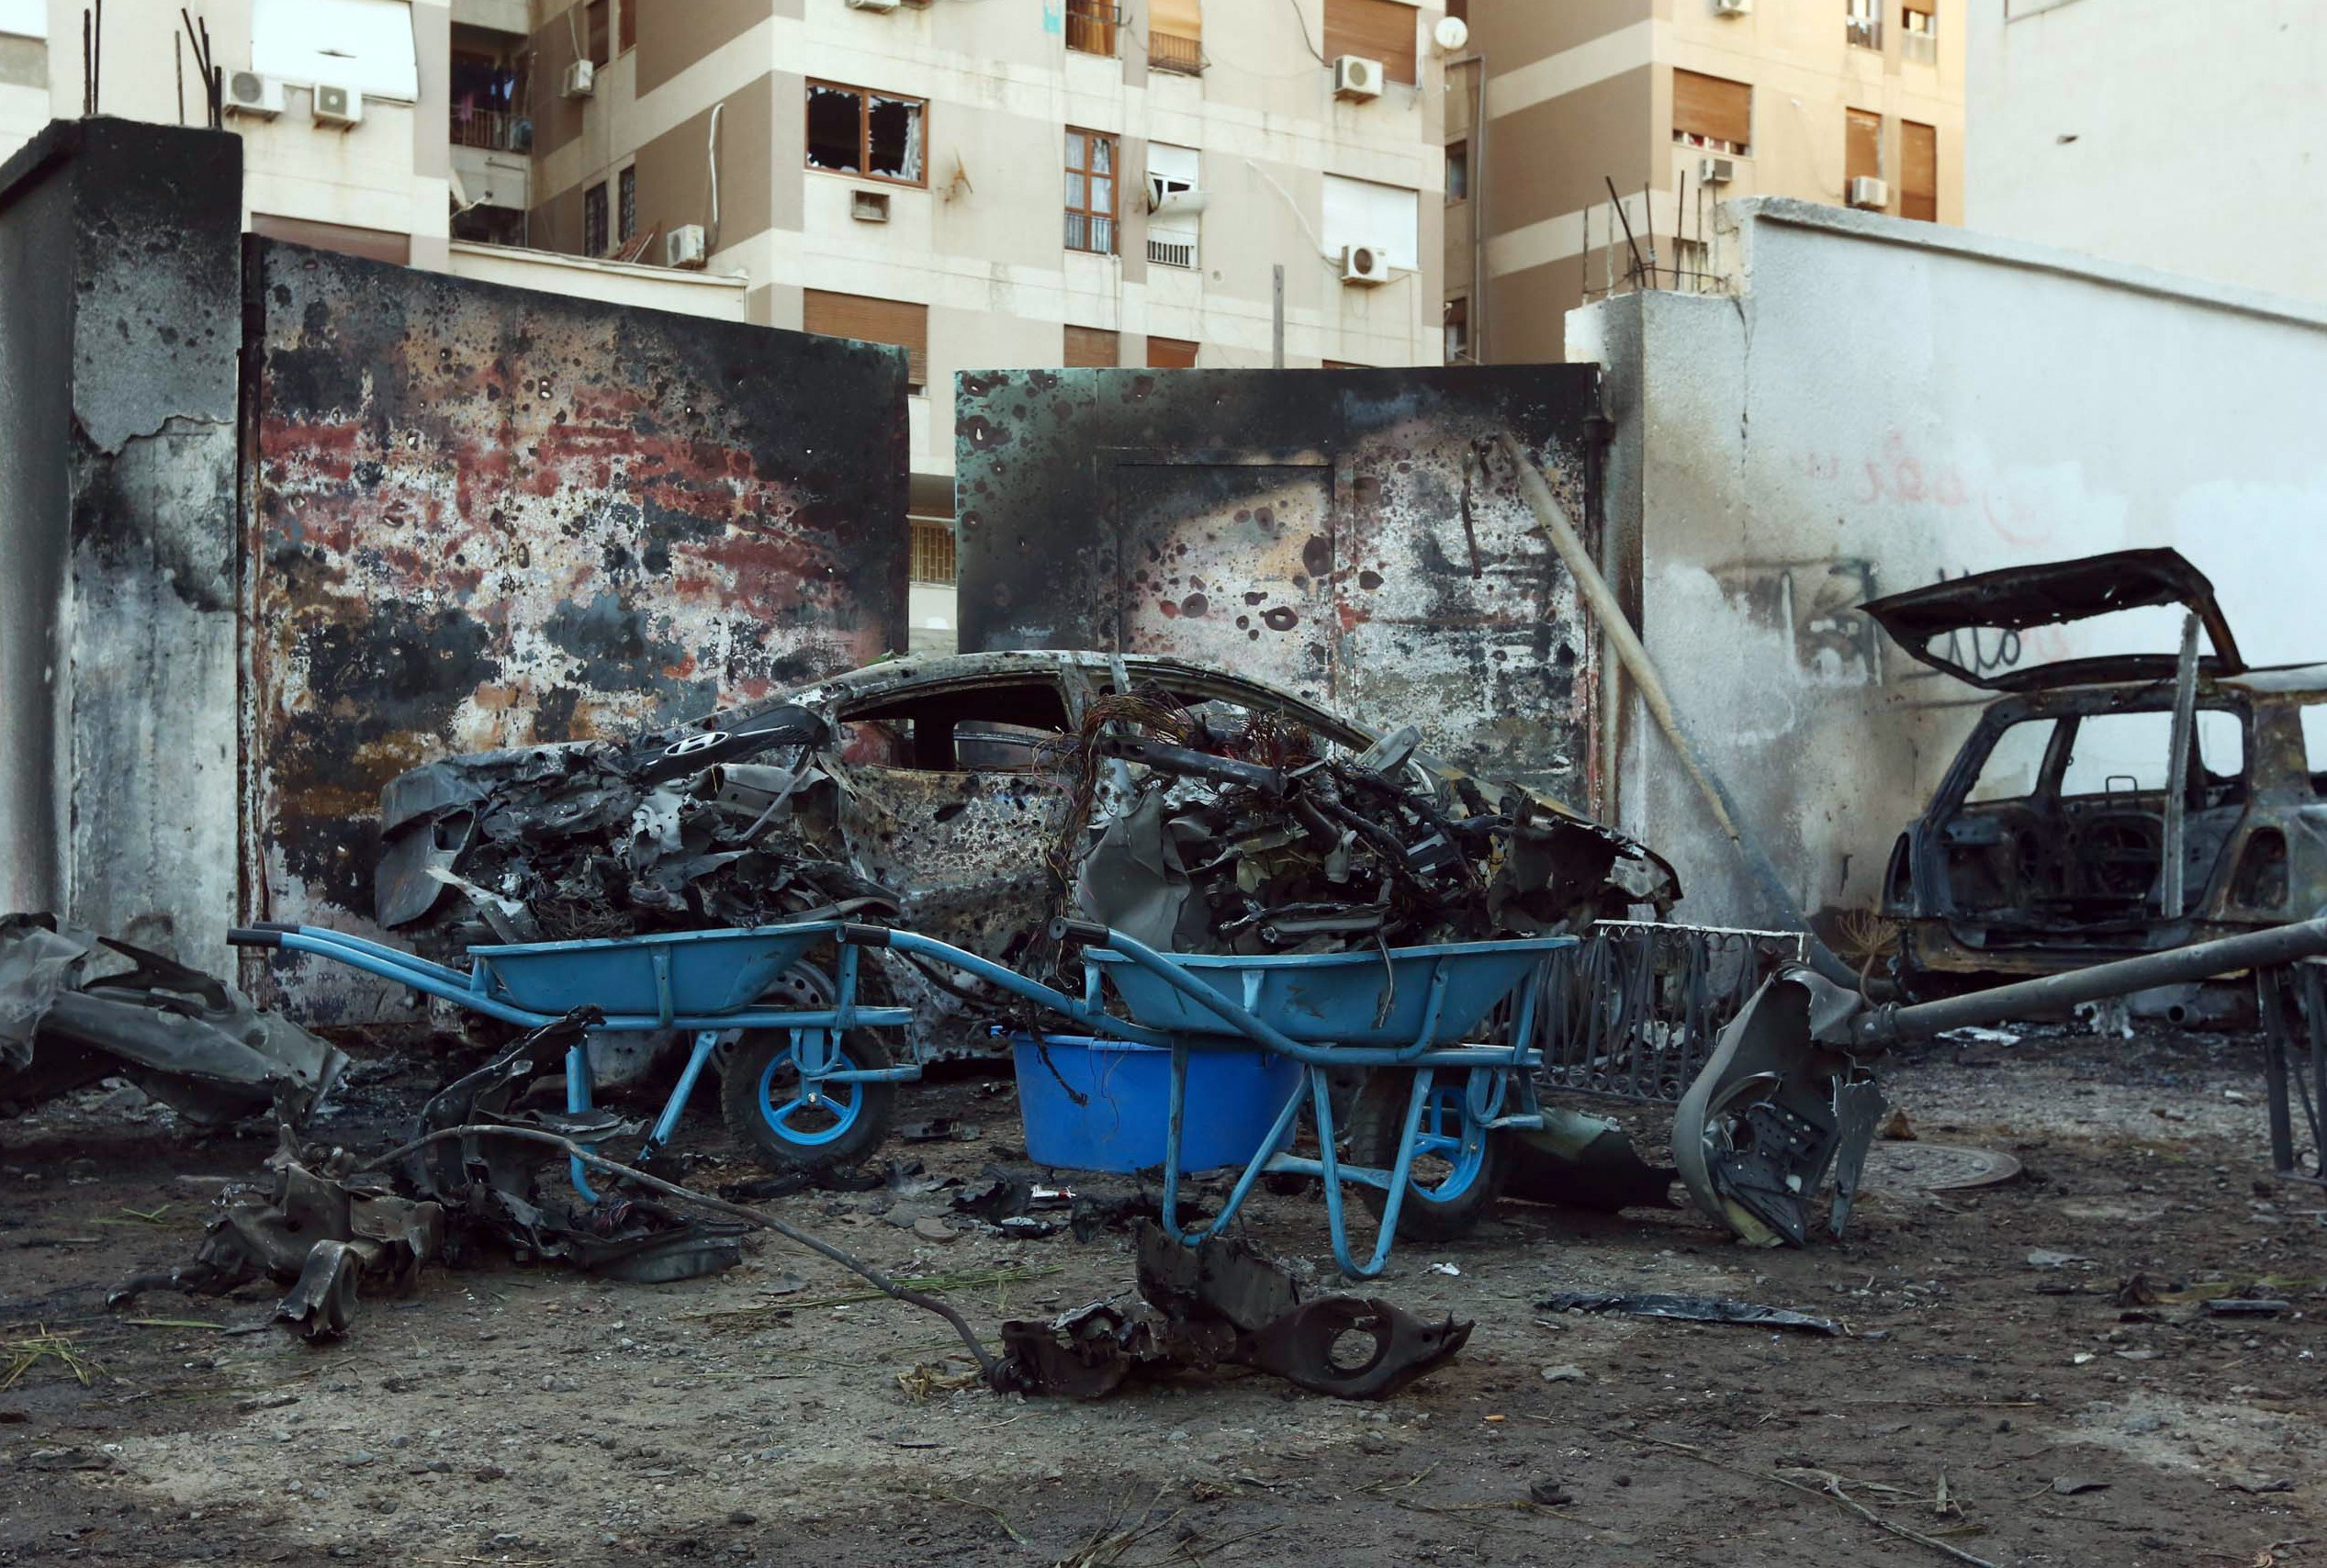 A destroyed vehicle is seen near the compound of the Egyptian embassy in the Libyan capital Tripoli on November 13, 2014 after it was targeted by a car bomb explosion.